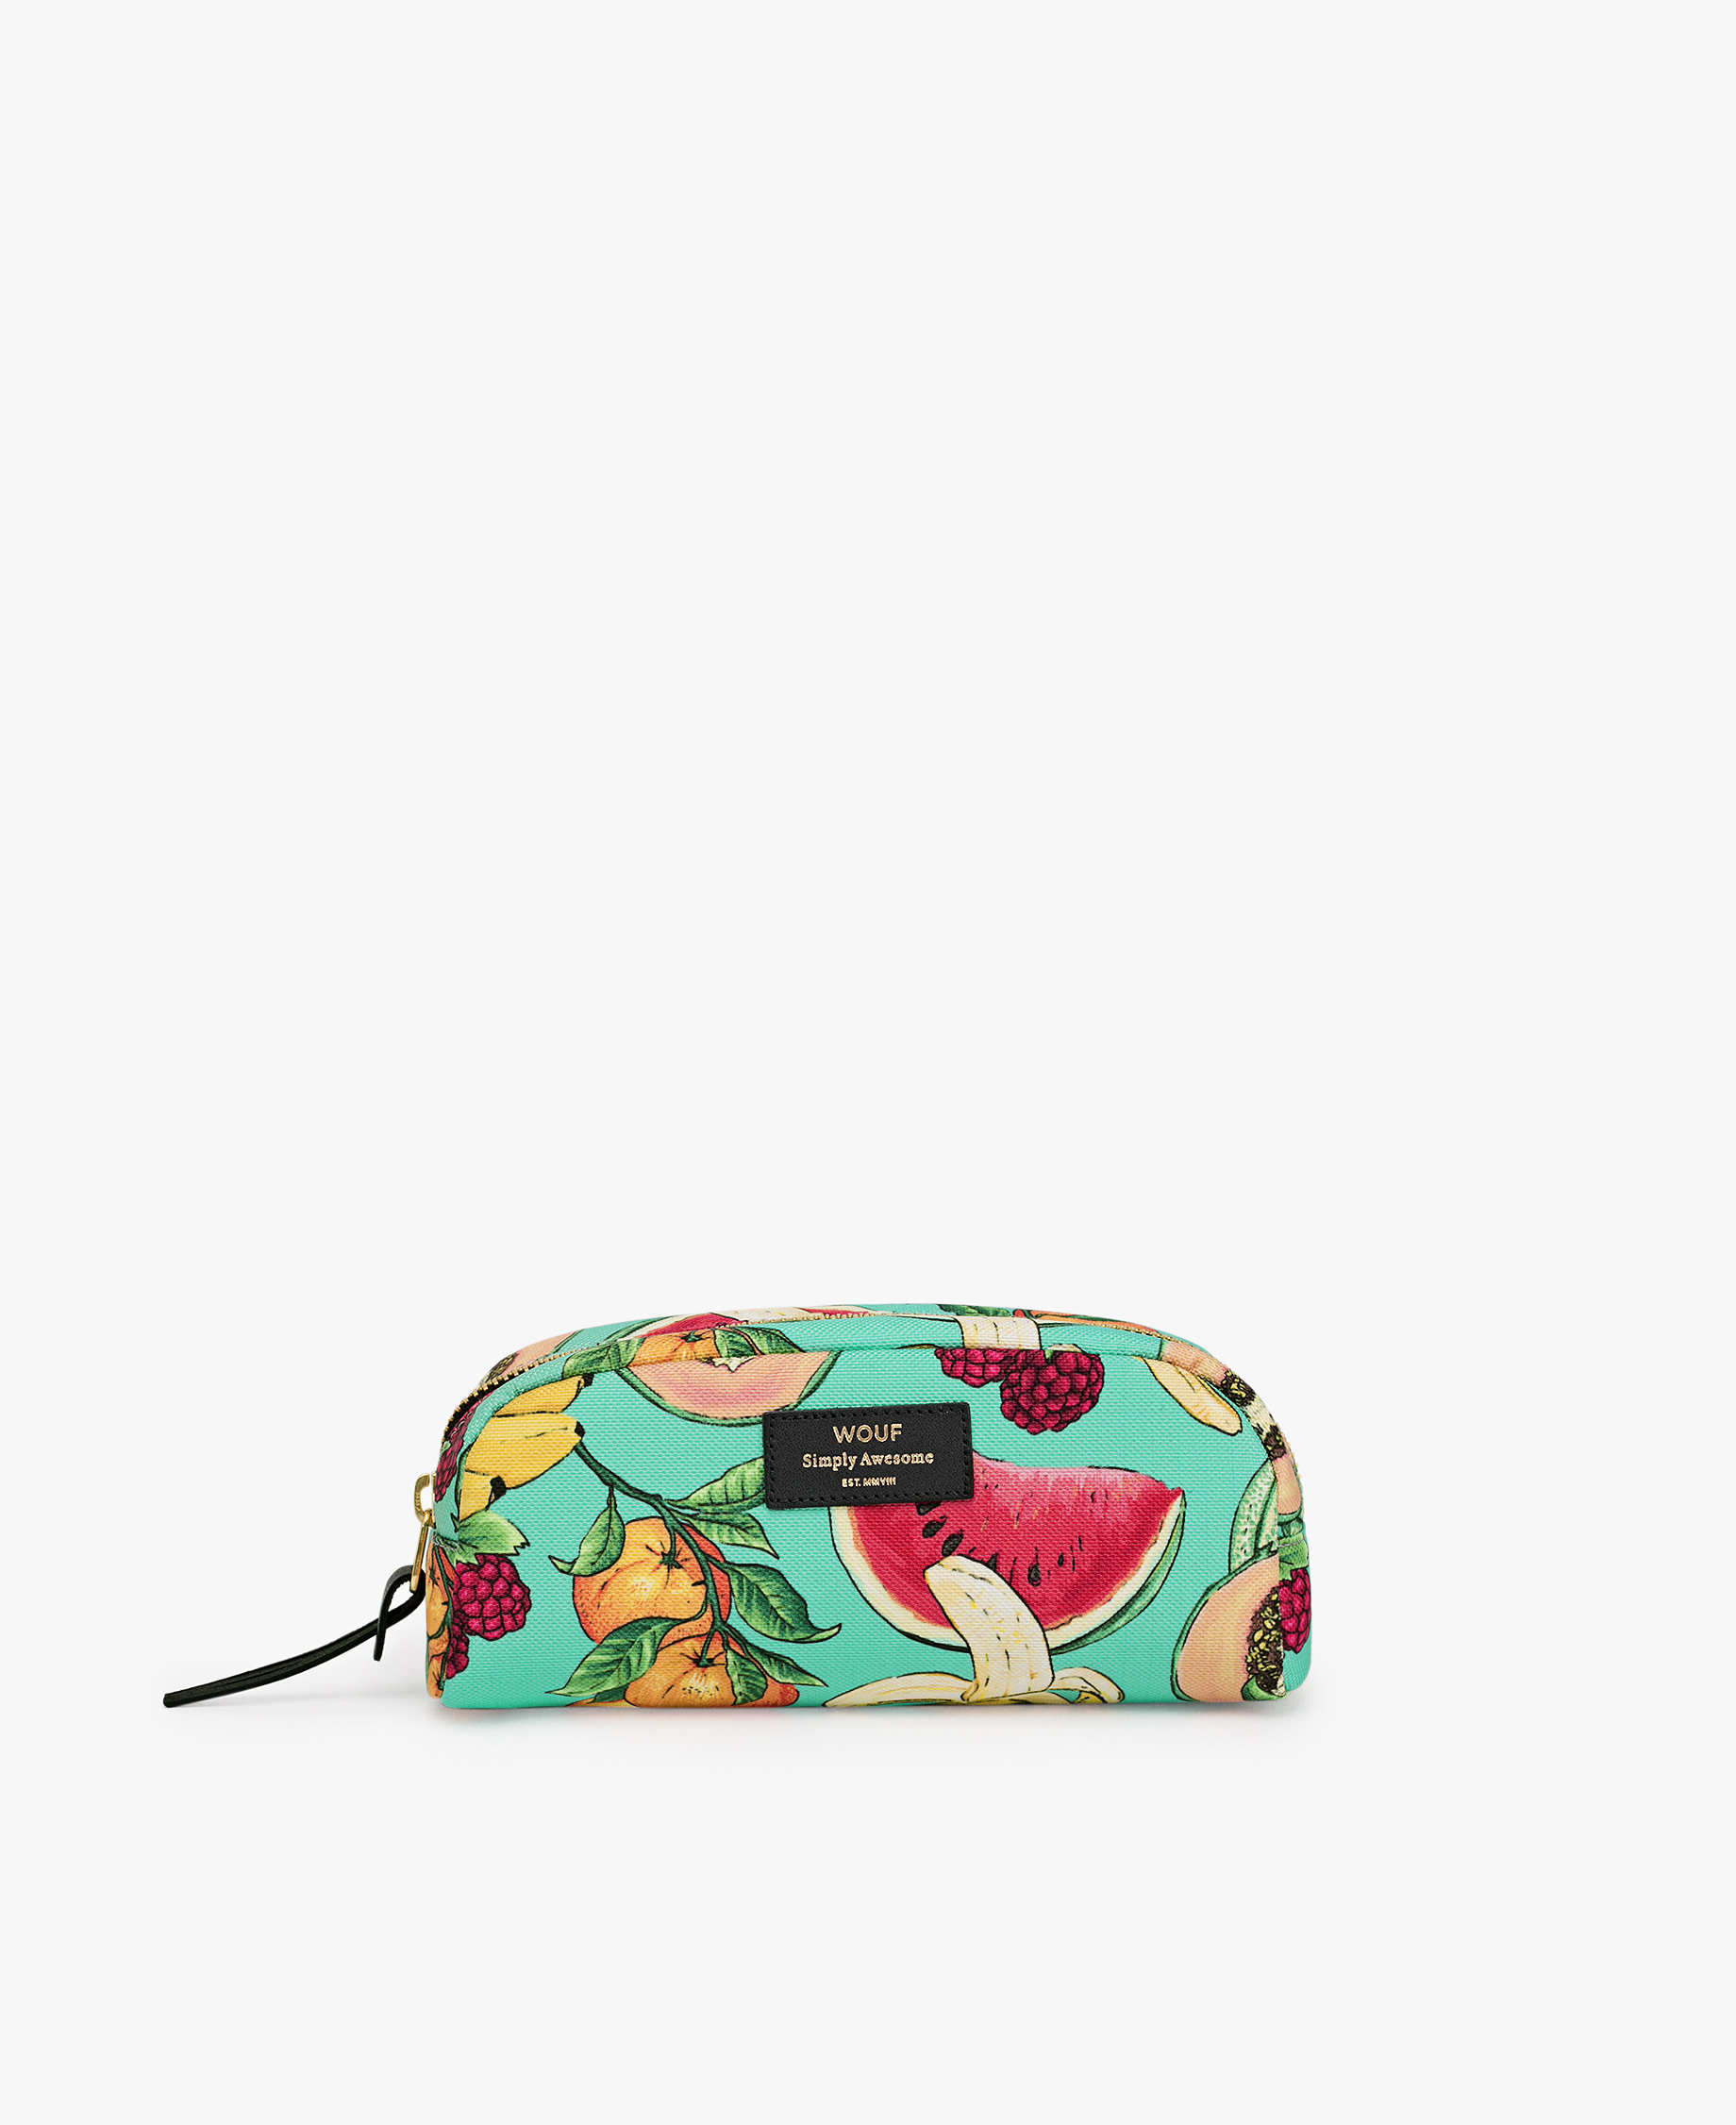 toiletry bag with colorful fruits